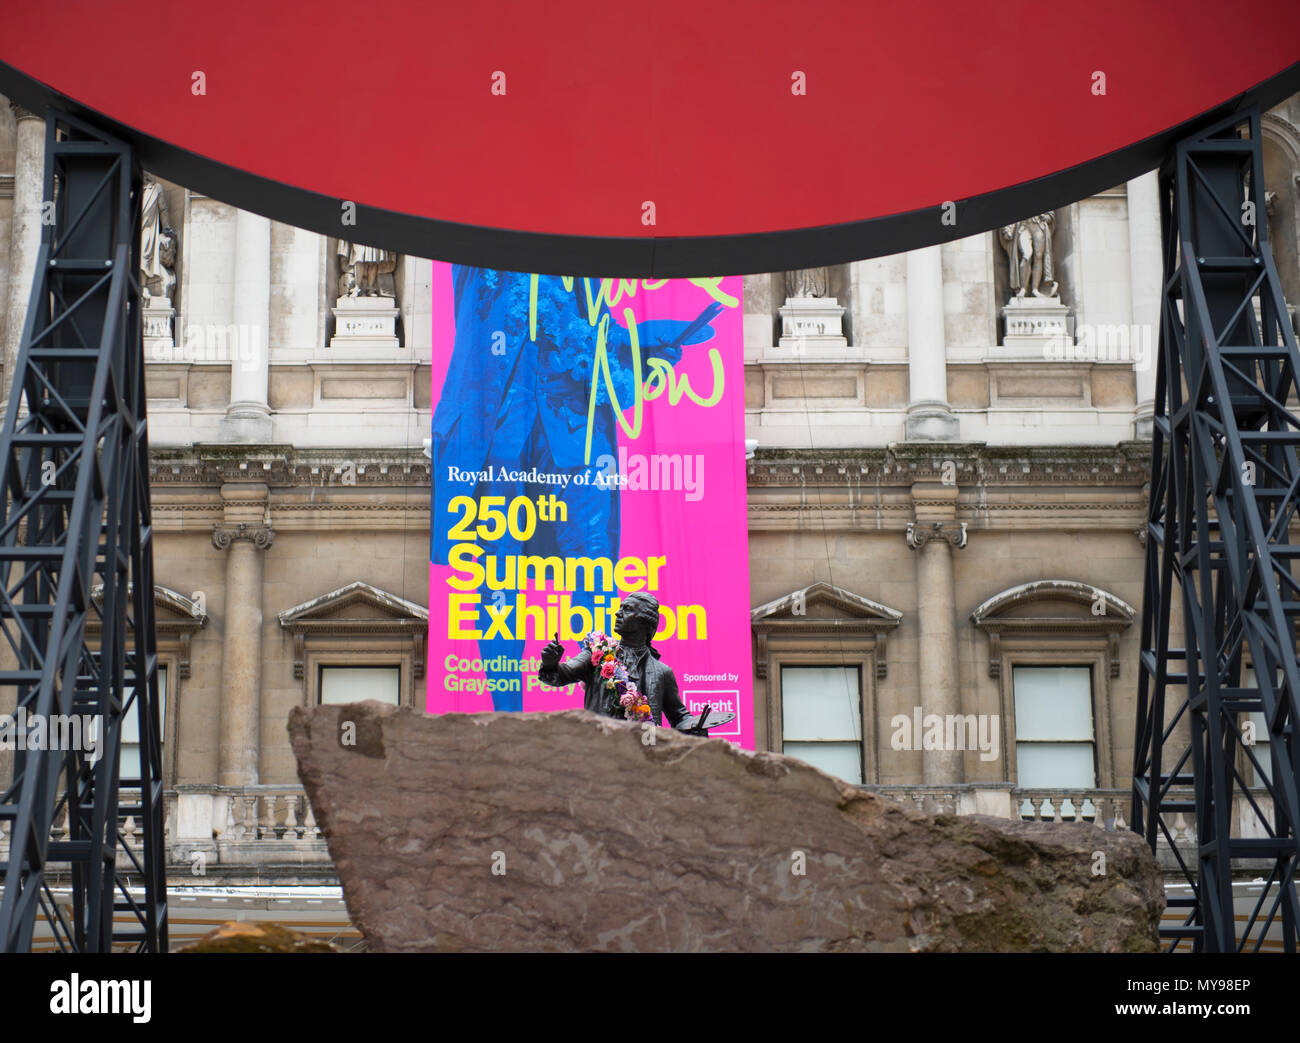 4 June 2018. Sir Anish Kapoor RA sculpture, Symphony for a Beloved Daughter 2018, in the Annenberg Courtyard, Royal Academy of Arts. - Stock Image